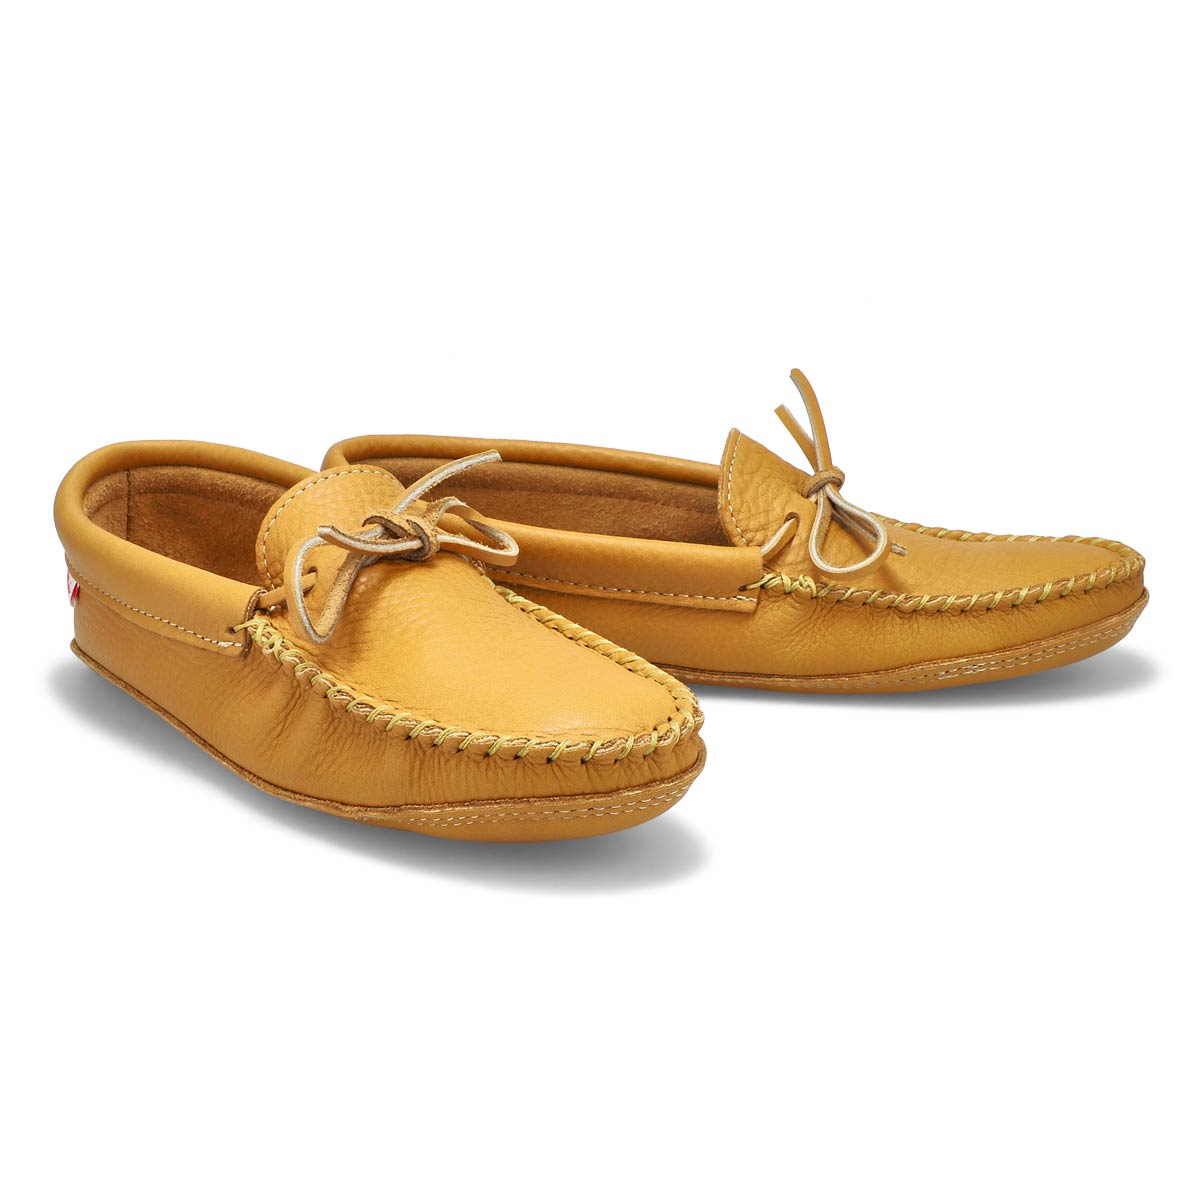 Mns double sole unlined  moose moccasin